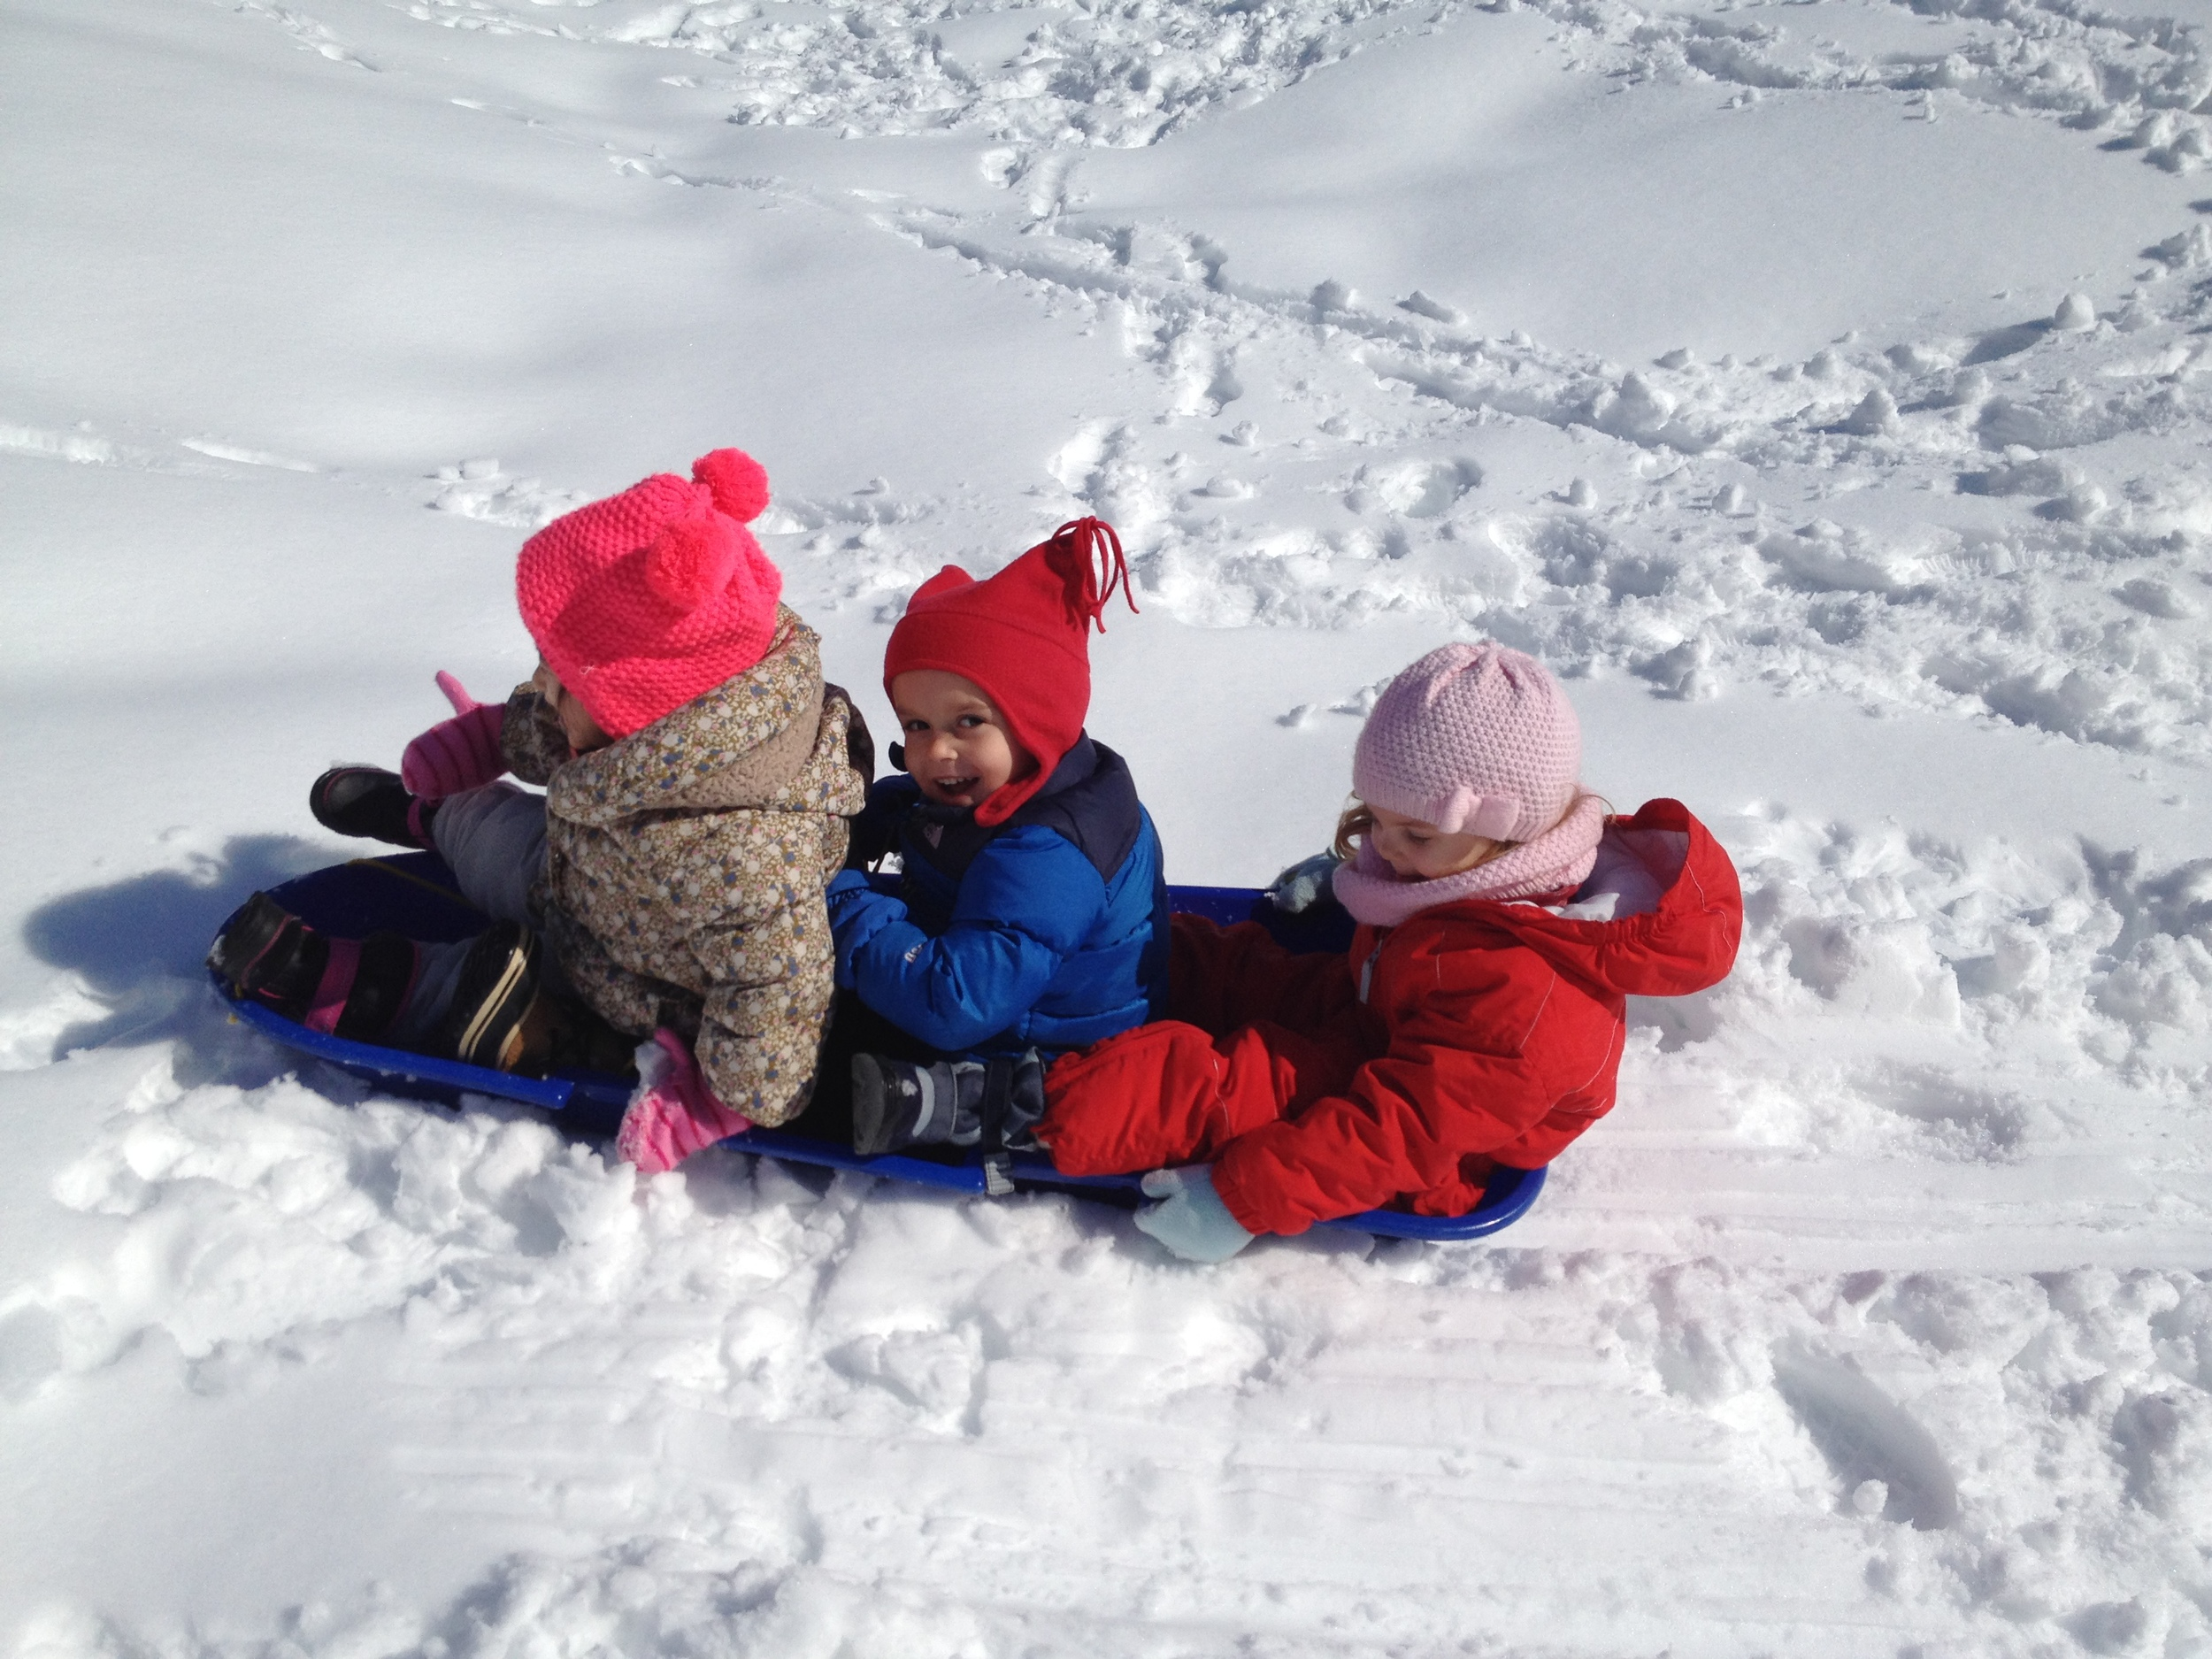 One last chance to sled!